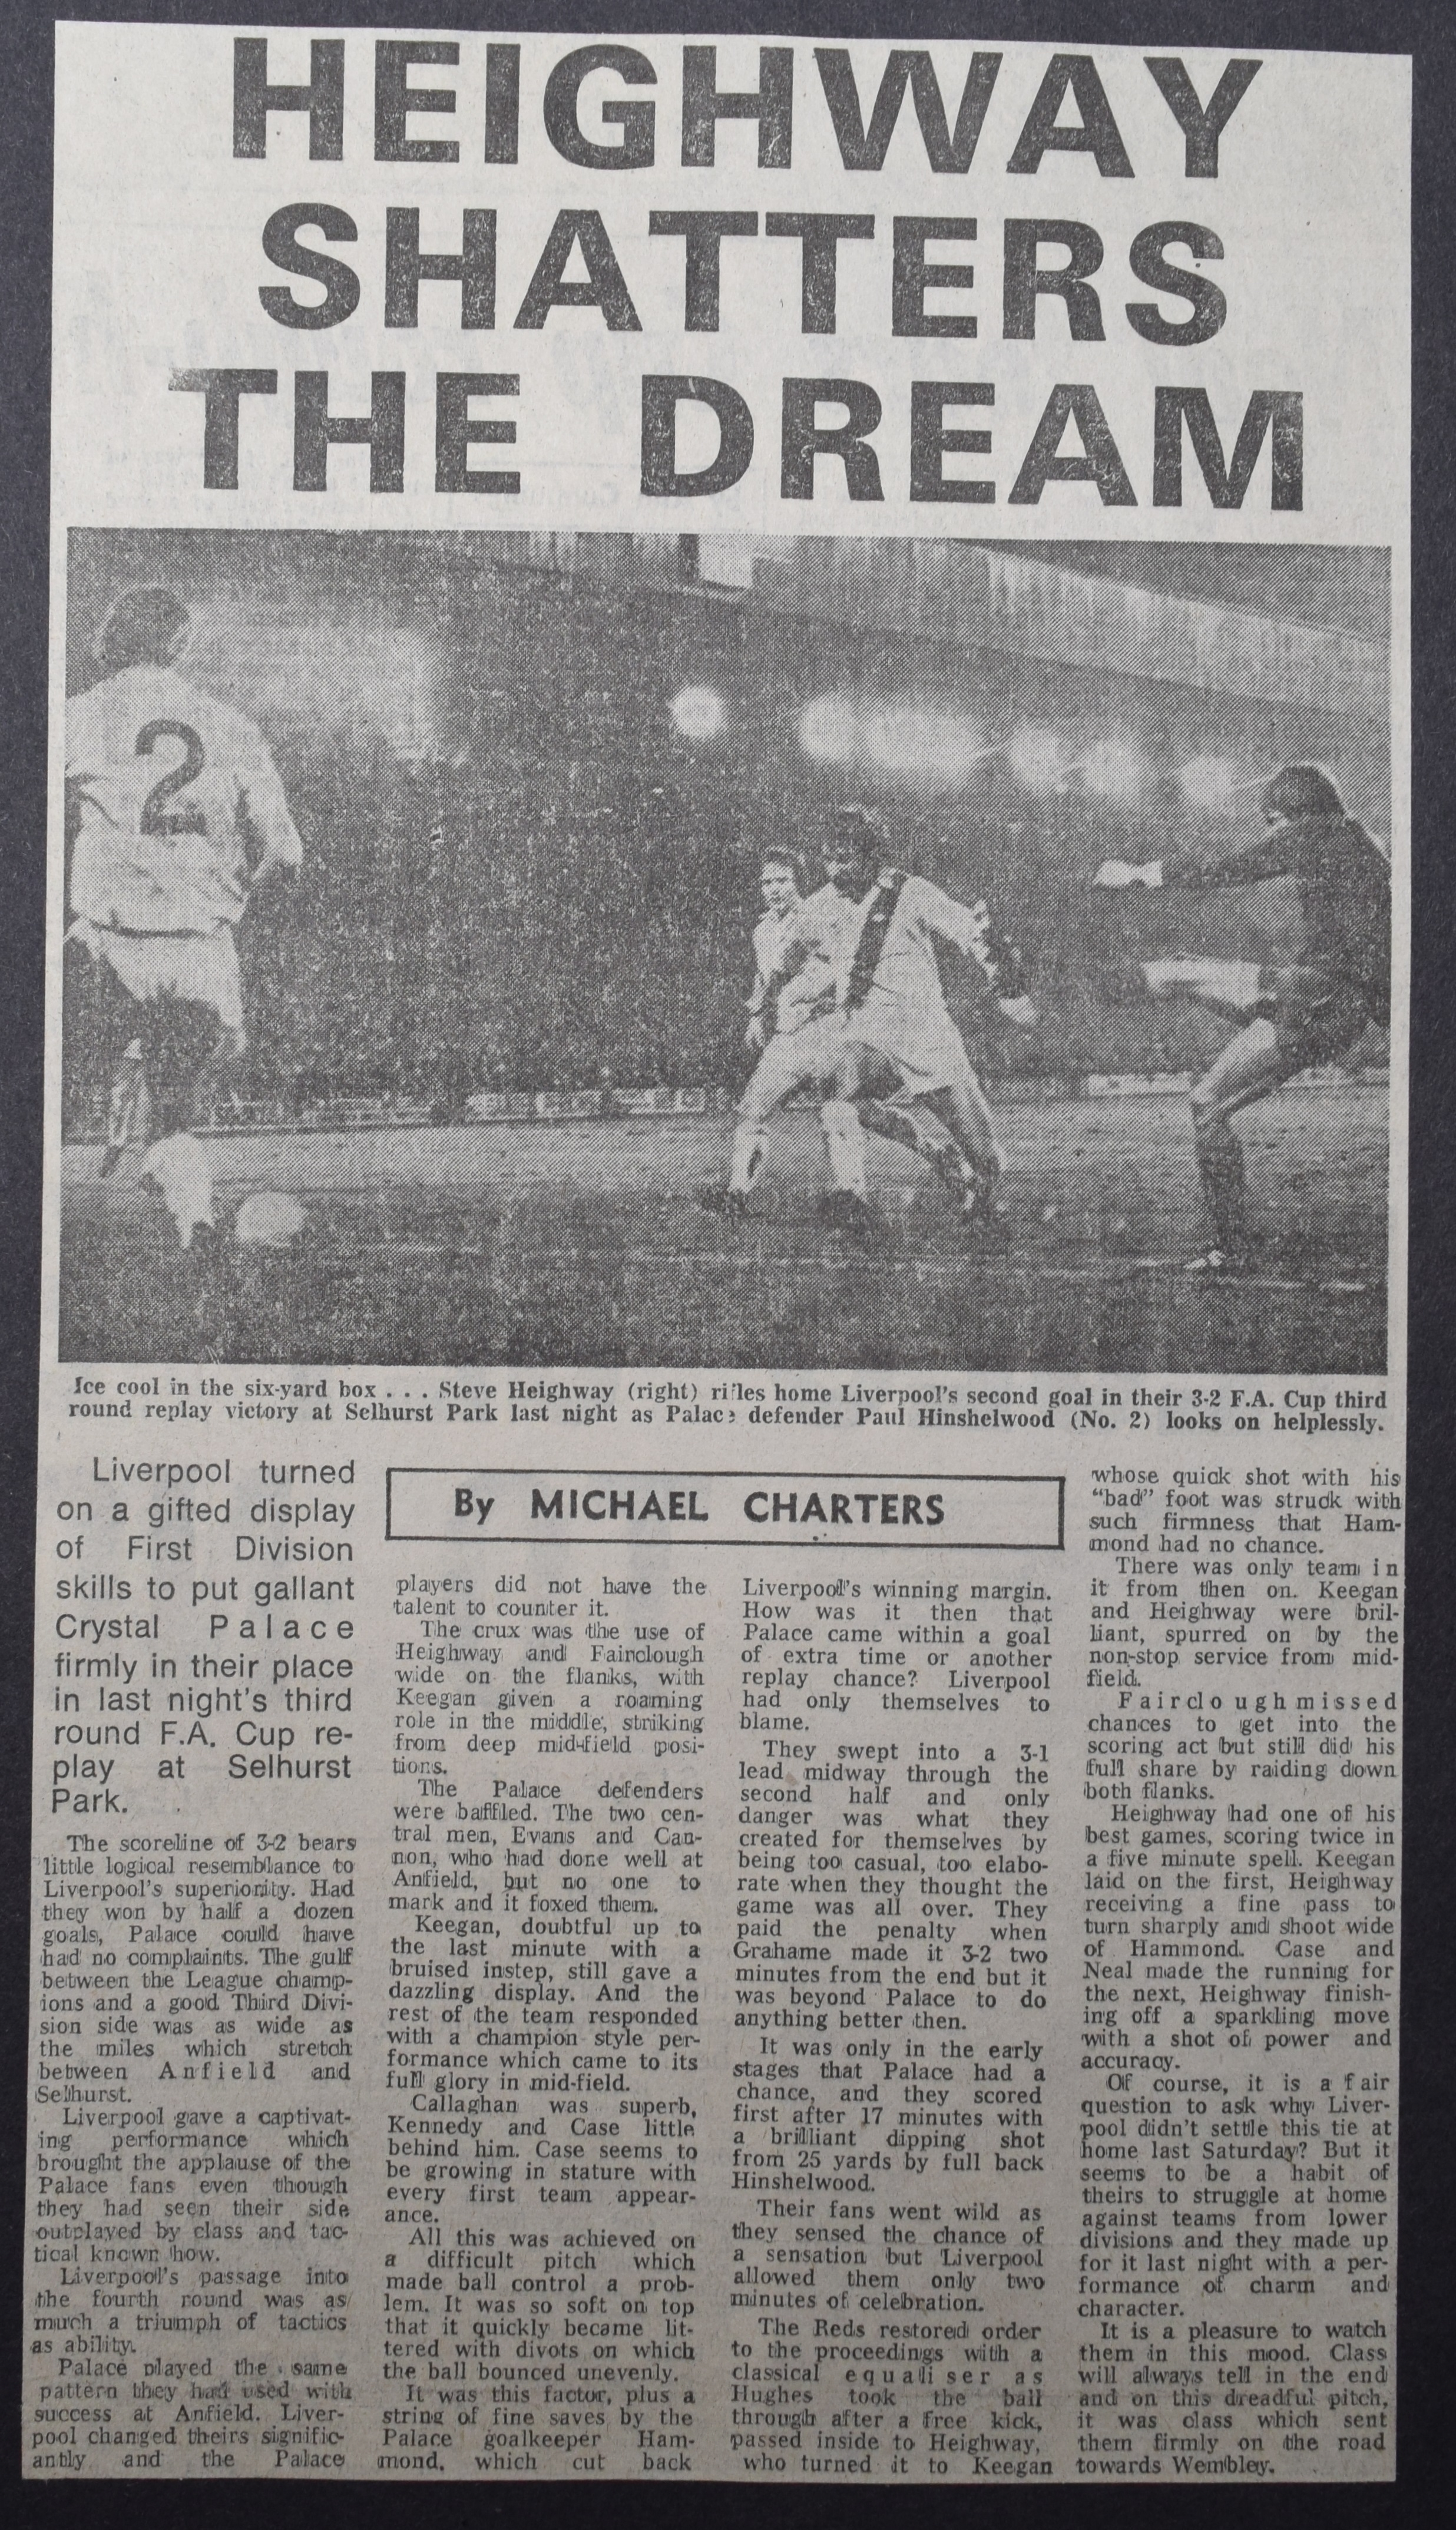 Heighway shatters the dream - 1 November 1977